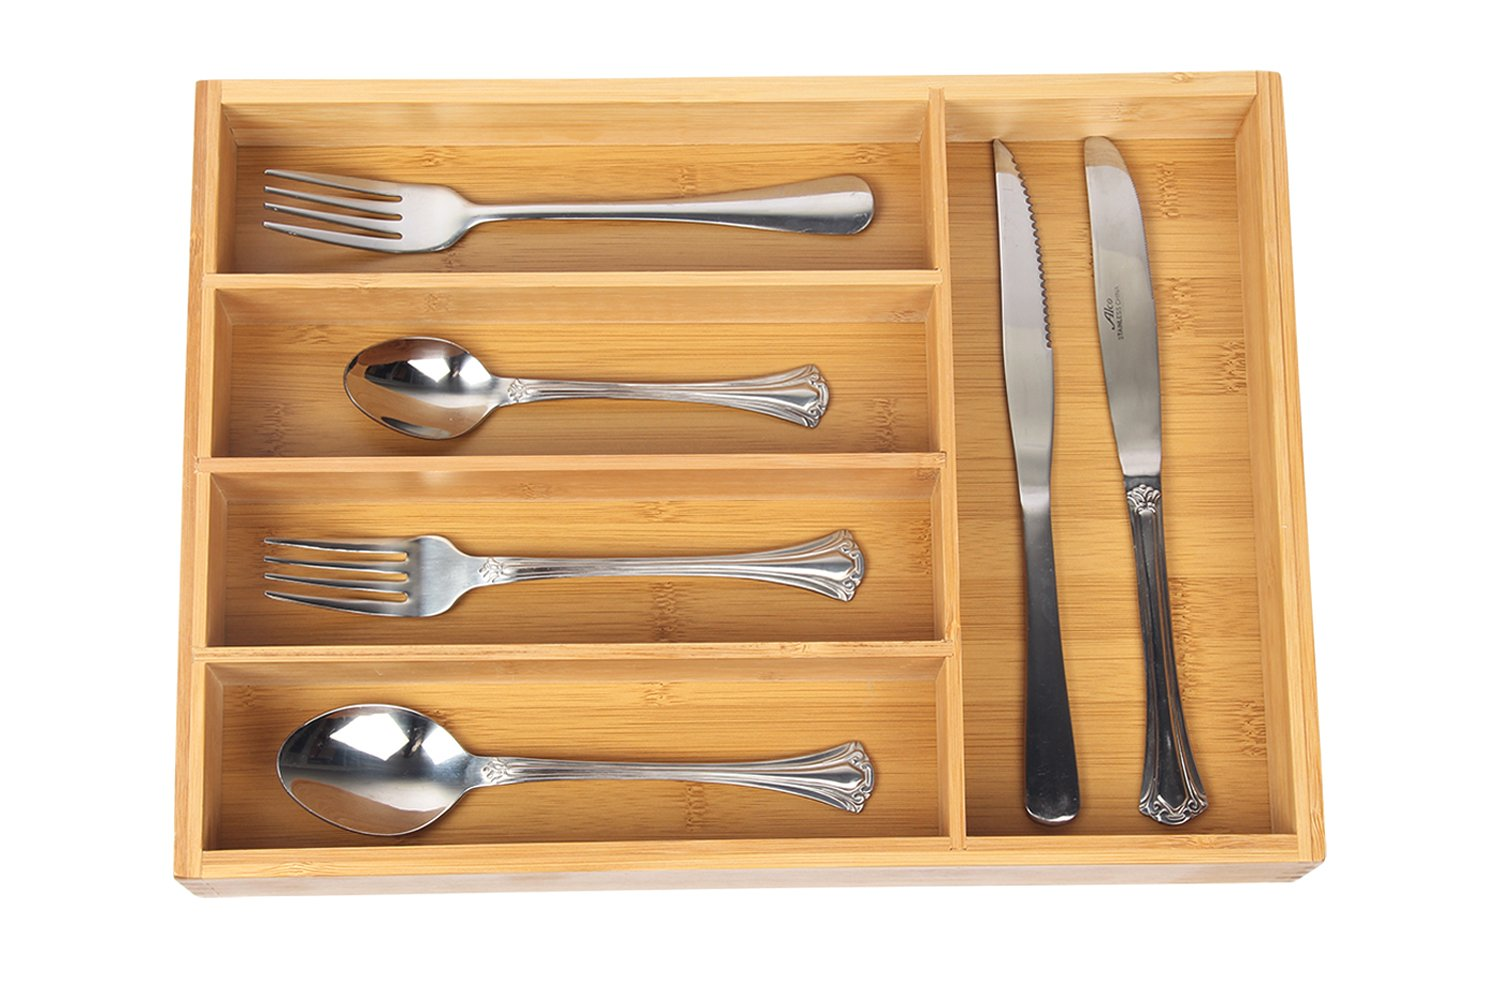 Organic Bamboo Wooden Cutlery Drawer Organizer with 5 compartments,Durable Utensil Tray,Nice and Antimicrobial Flatware Drawer Divers,Natural and Eco-friendly (bamboo)